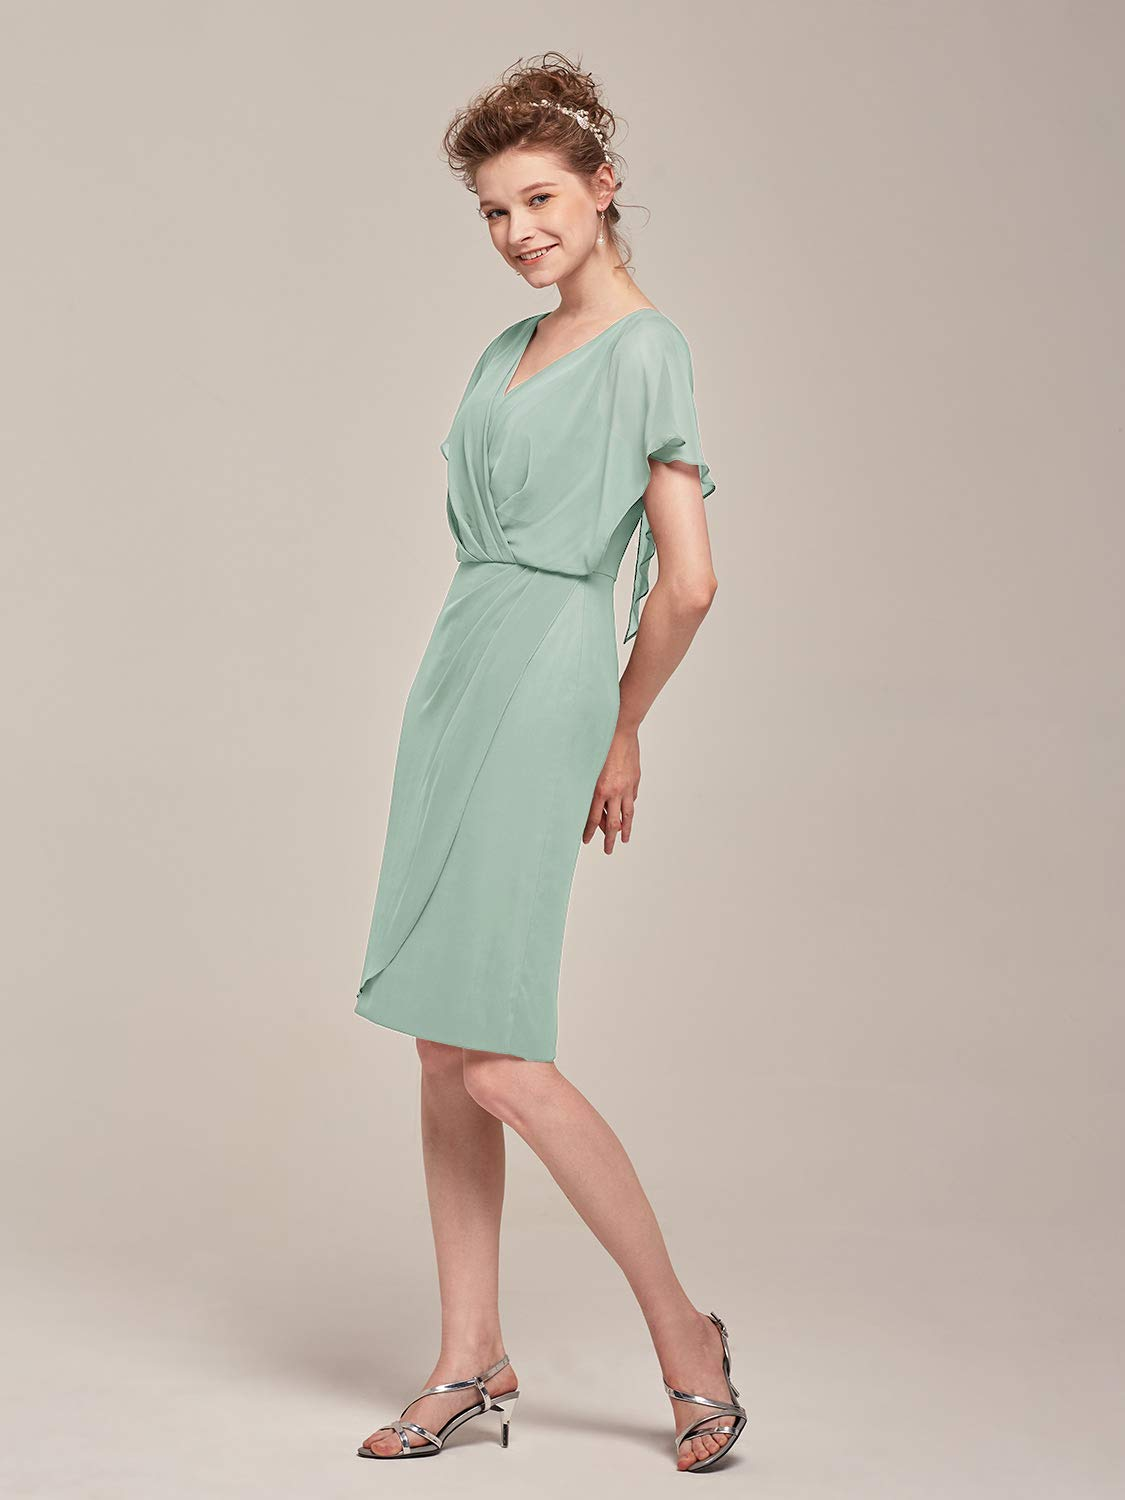 AW Mother of The Bride Dress Plus Size V-Neck Short Sleeve Formal Prom  Dress for Wedding Guest Women,Sage Green,US18